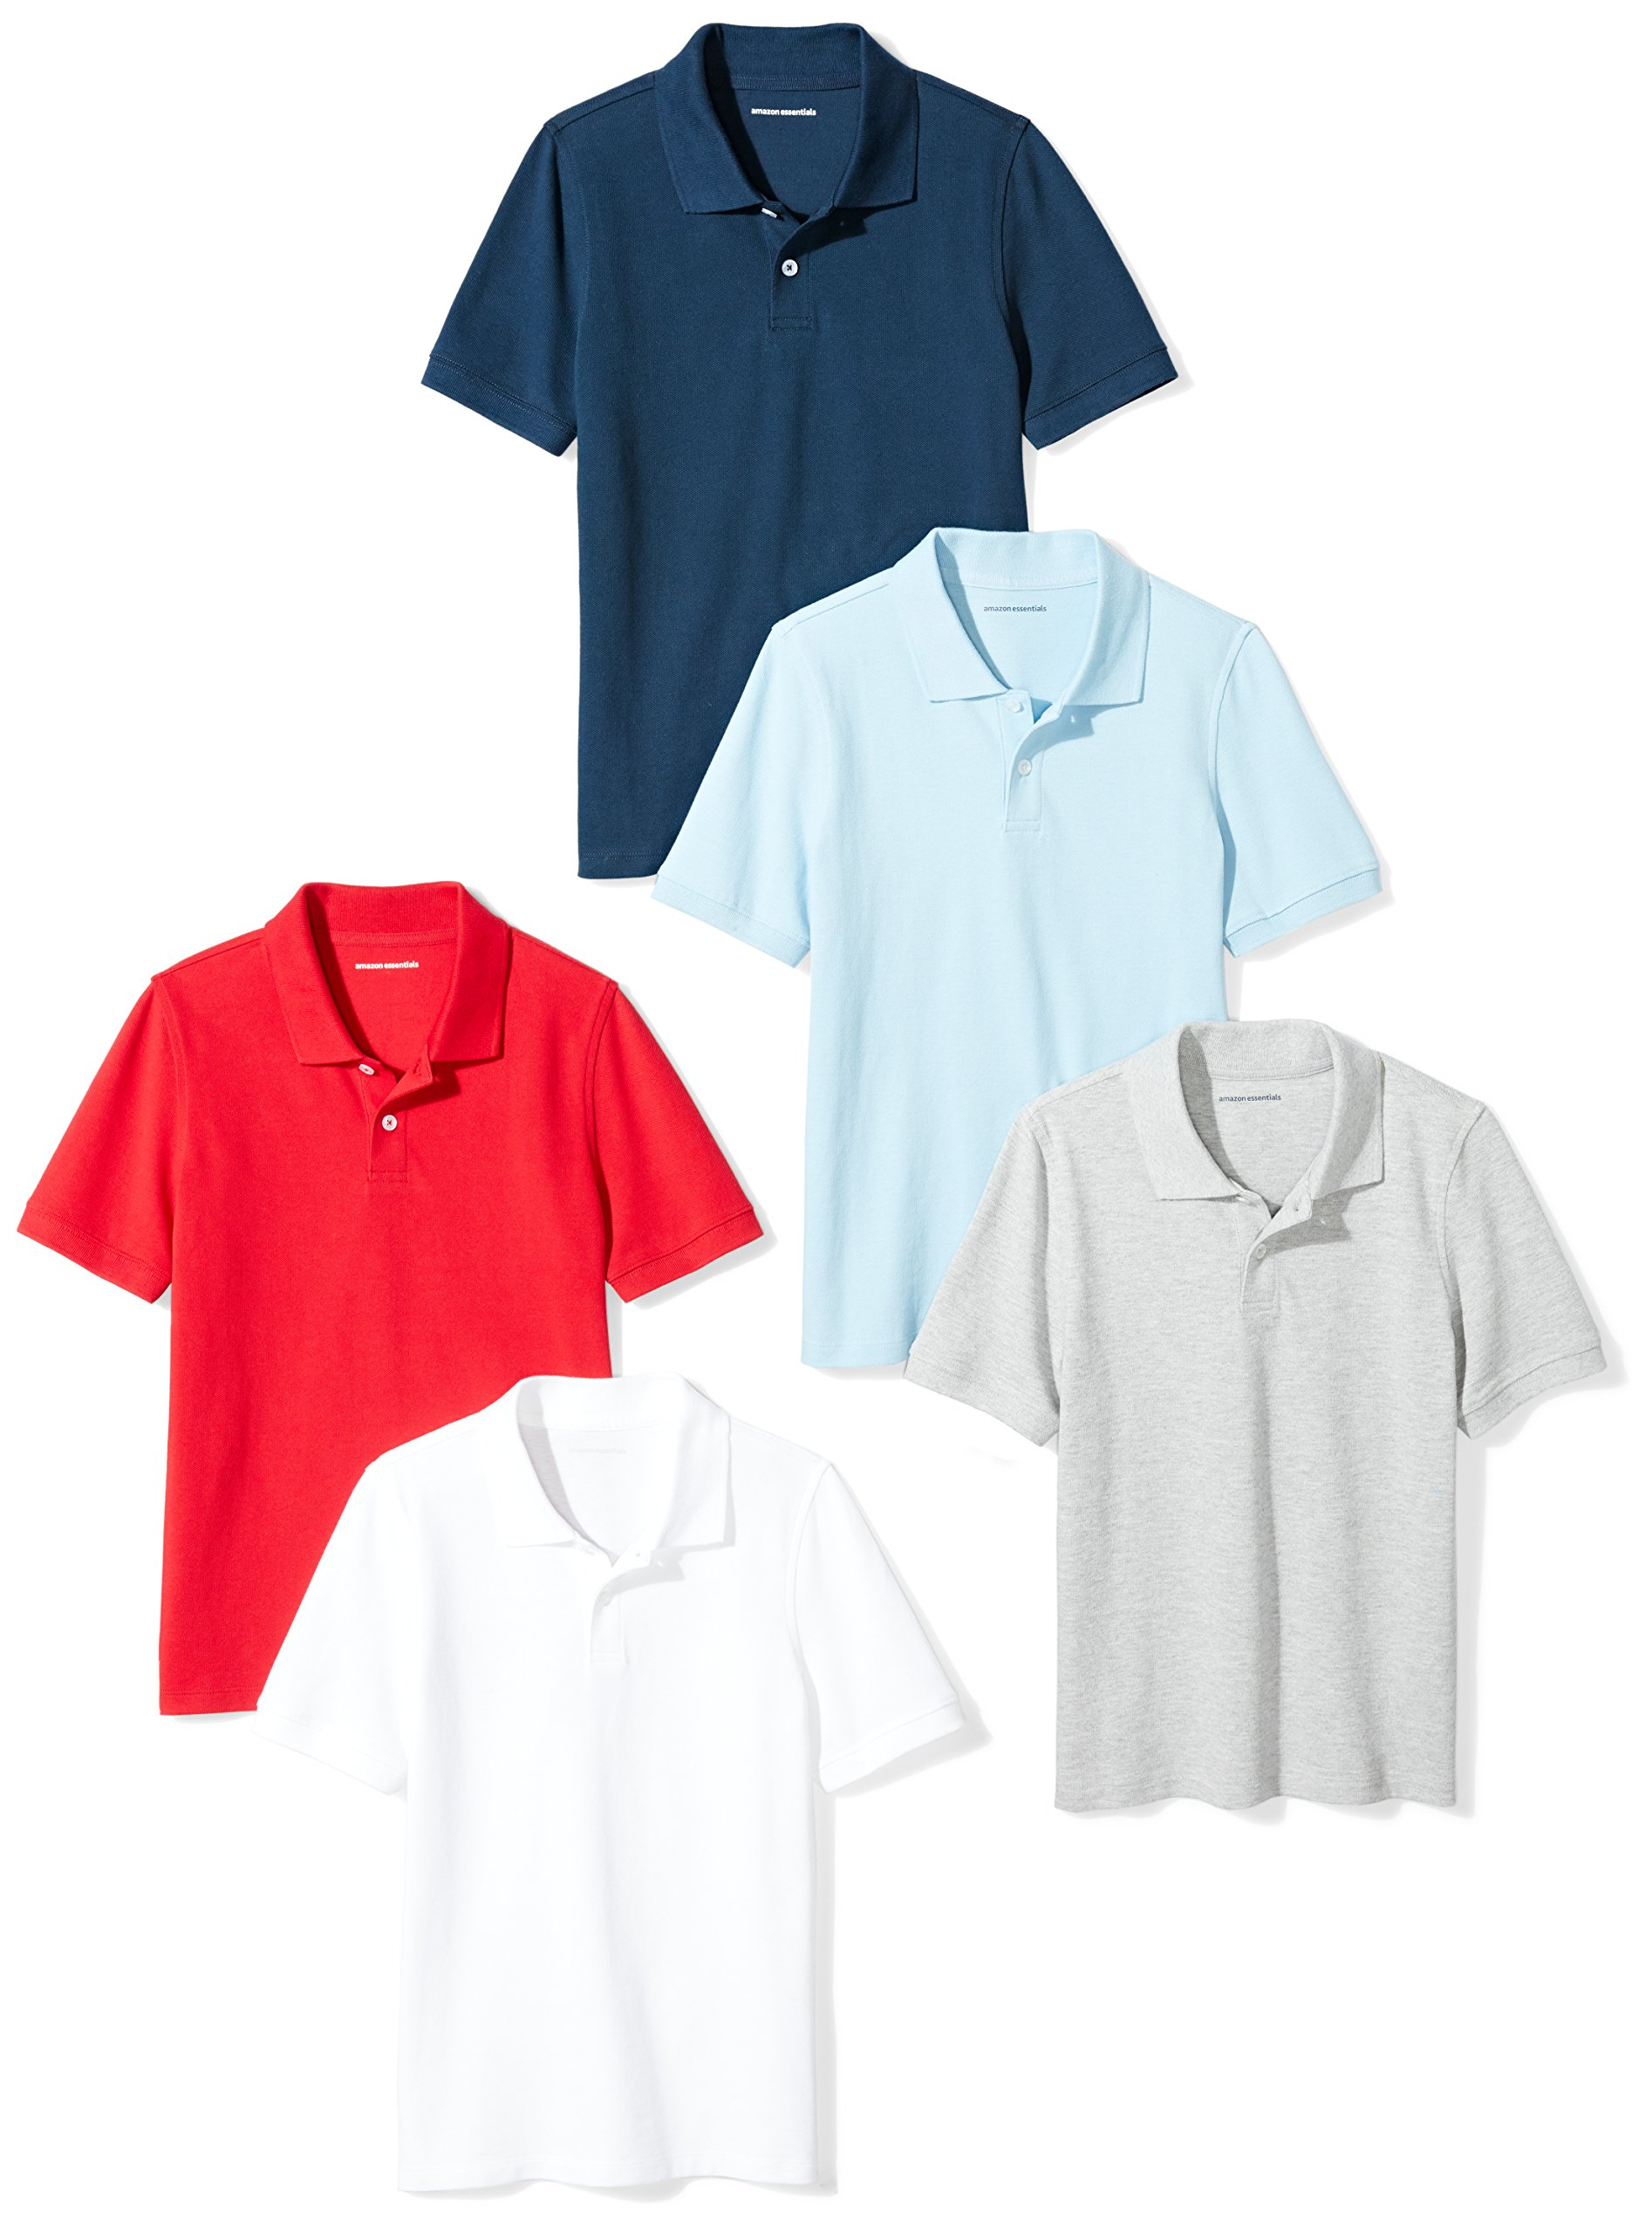 Amazon Essentials Boys' 5-Pack Short-Sleeve Uniform Pique Polo, Multi Pack, M(8)